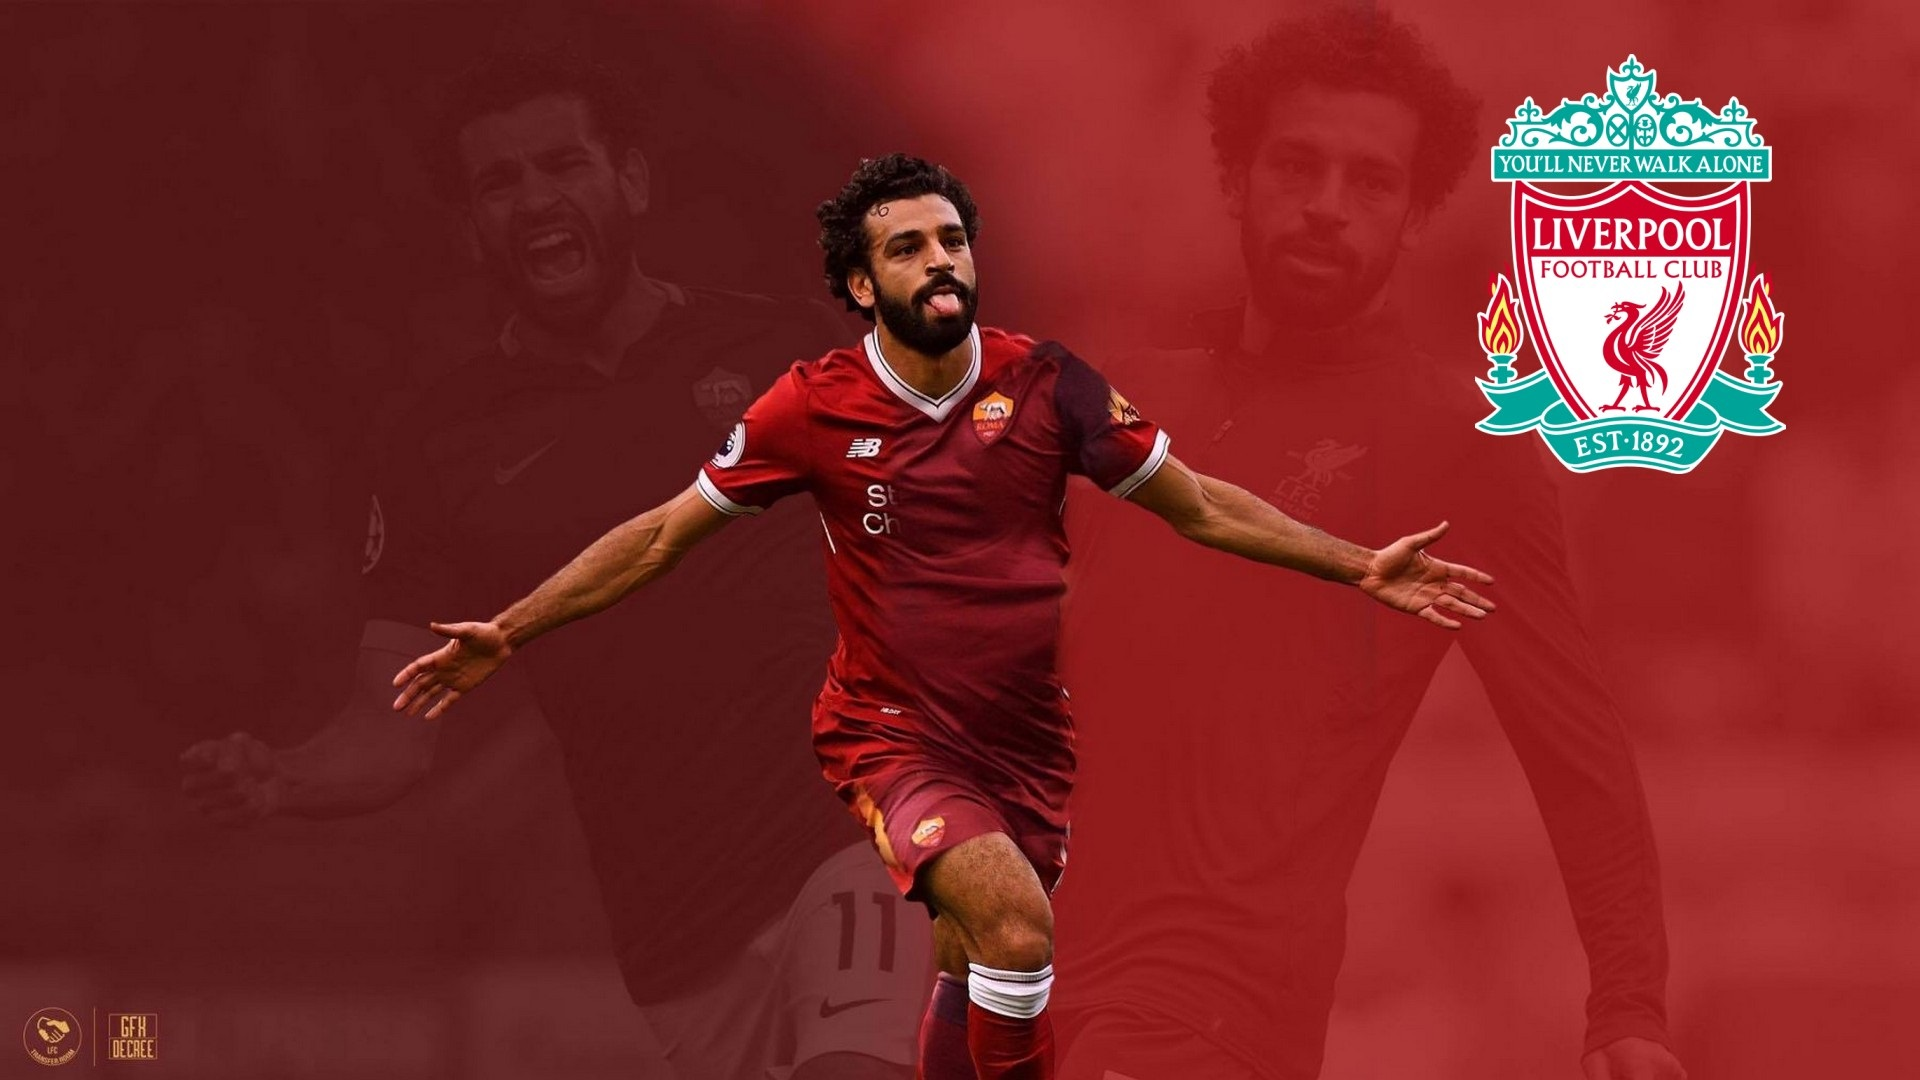 Mohamed Salah HD Desktop Wallpapers At Liverpool FC